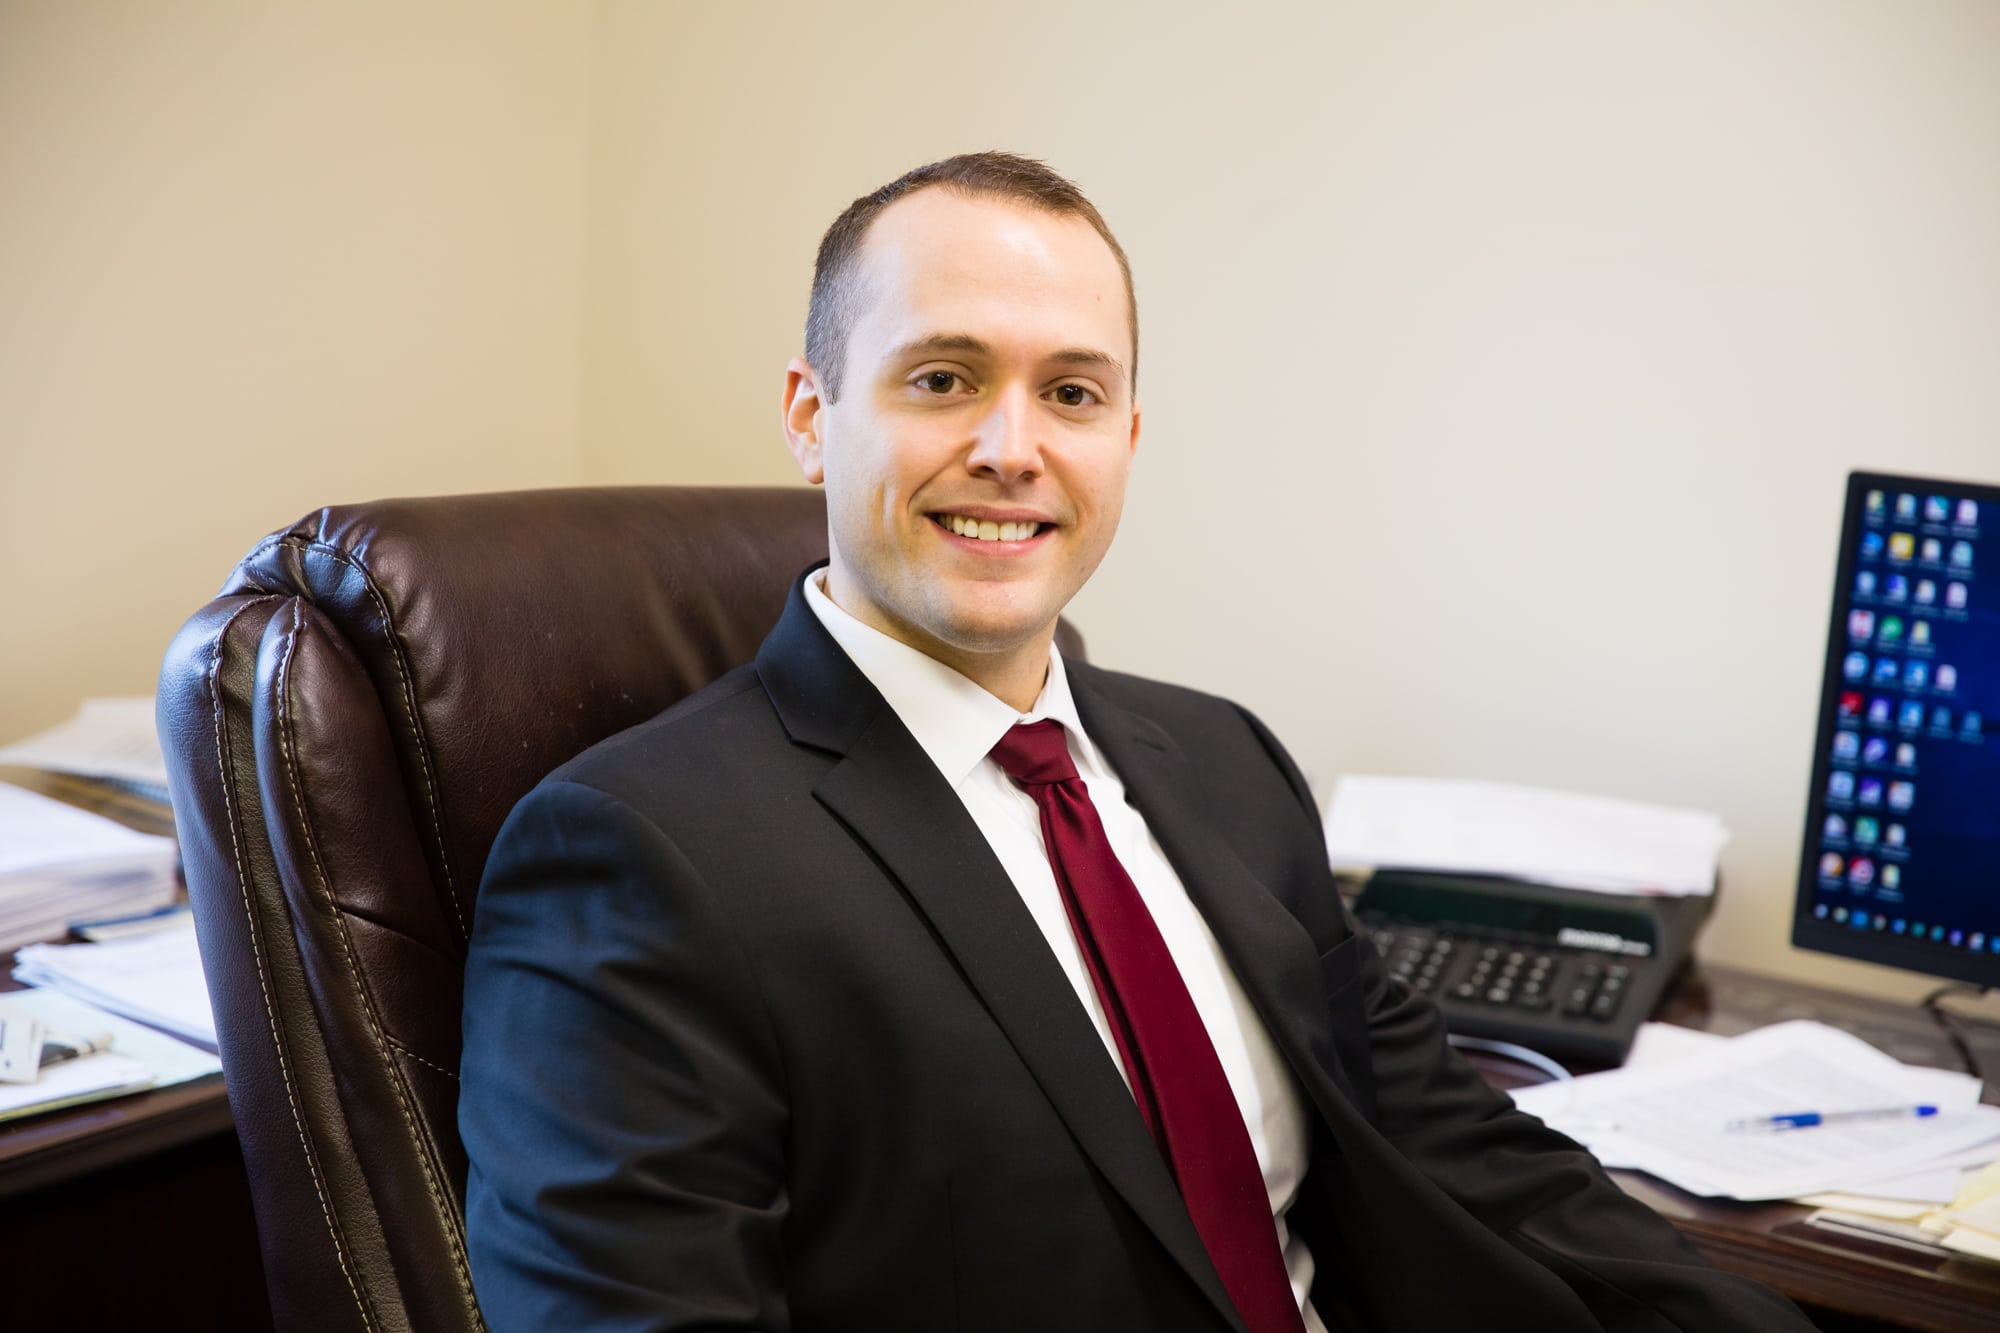 Michael K. Warne, CPA, MST - Manager